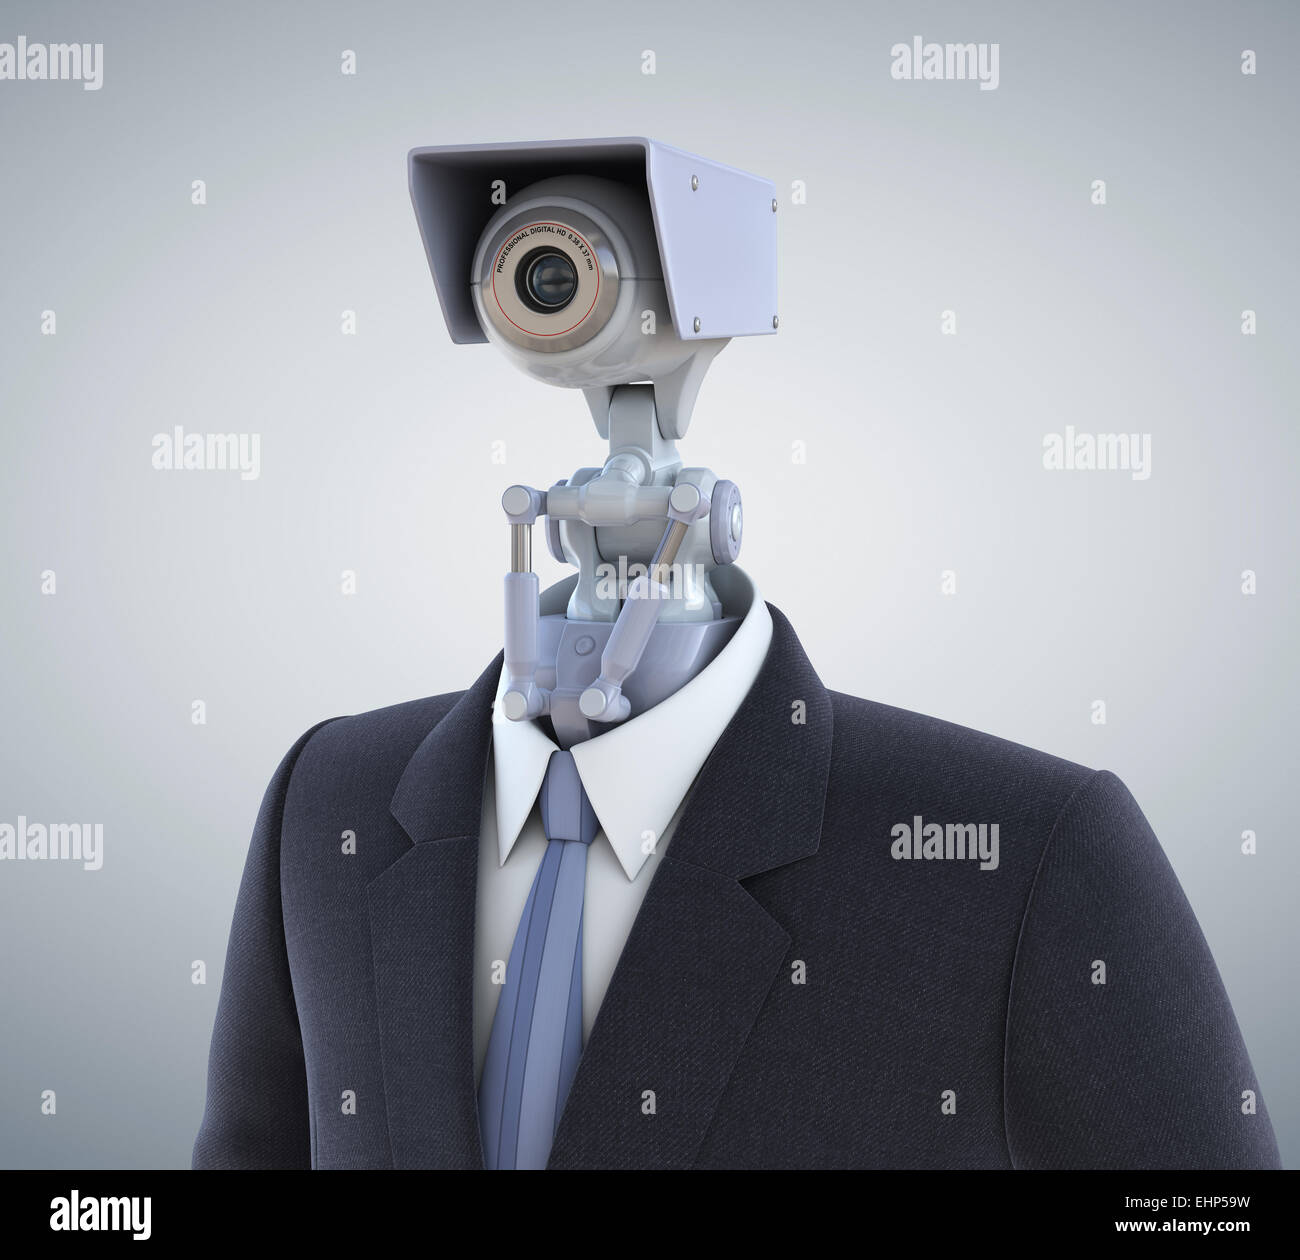 Automated surveillance camera. Clipping path included Stock Photo